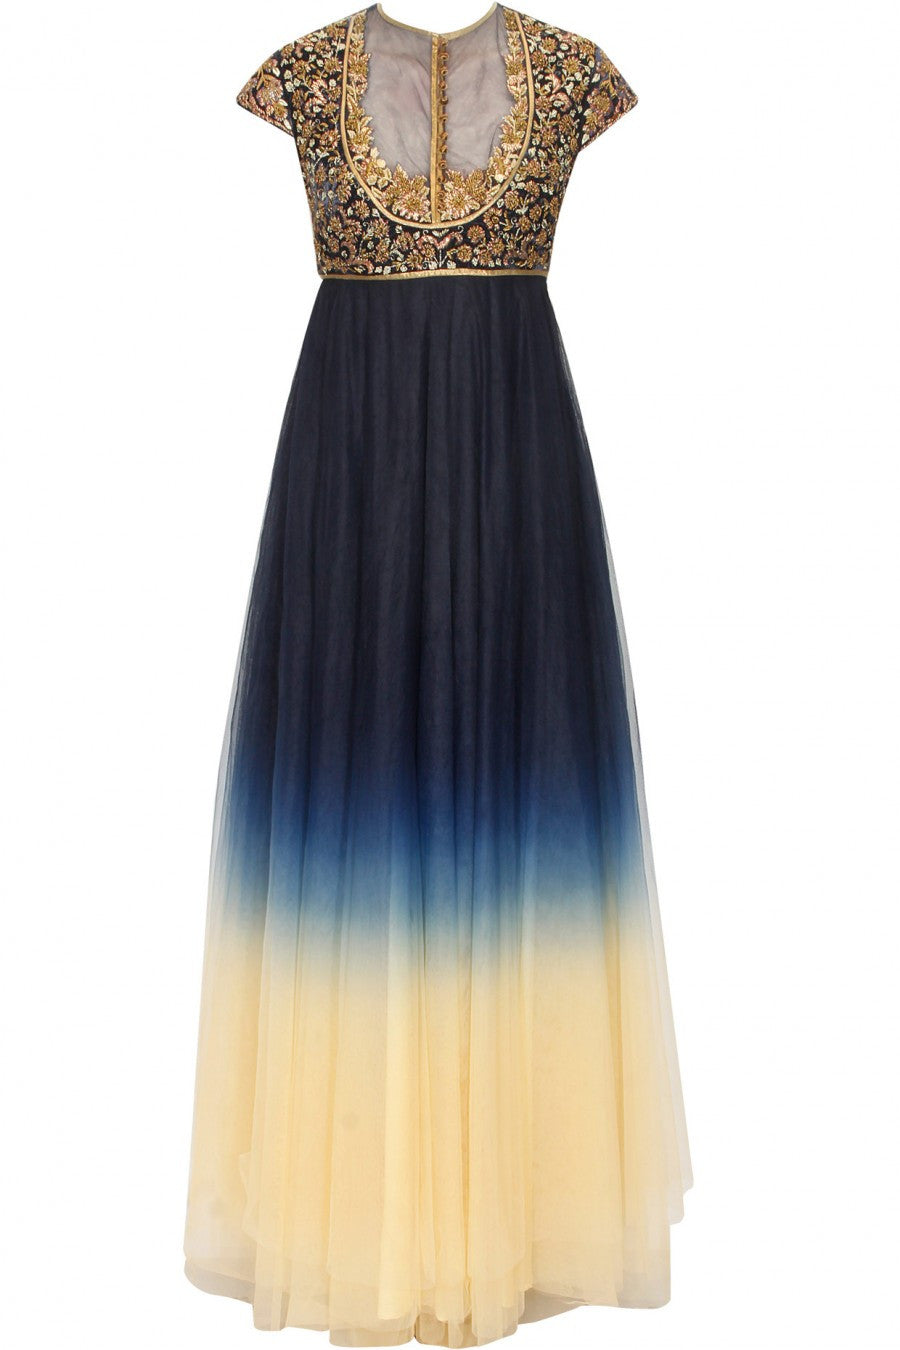 Navy Blue and Ivory shaded anarkali suit